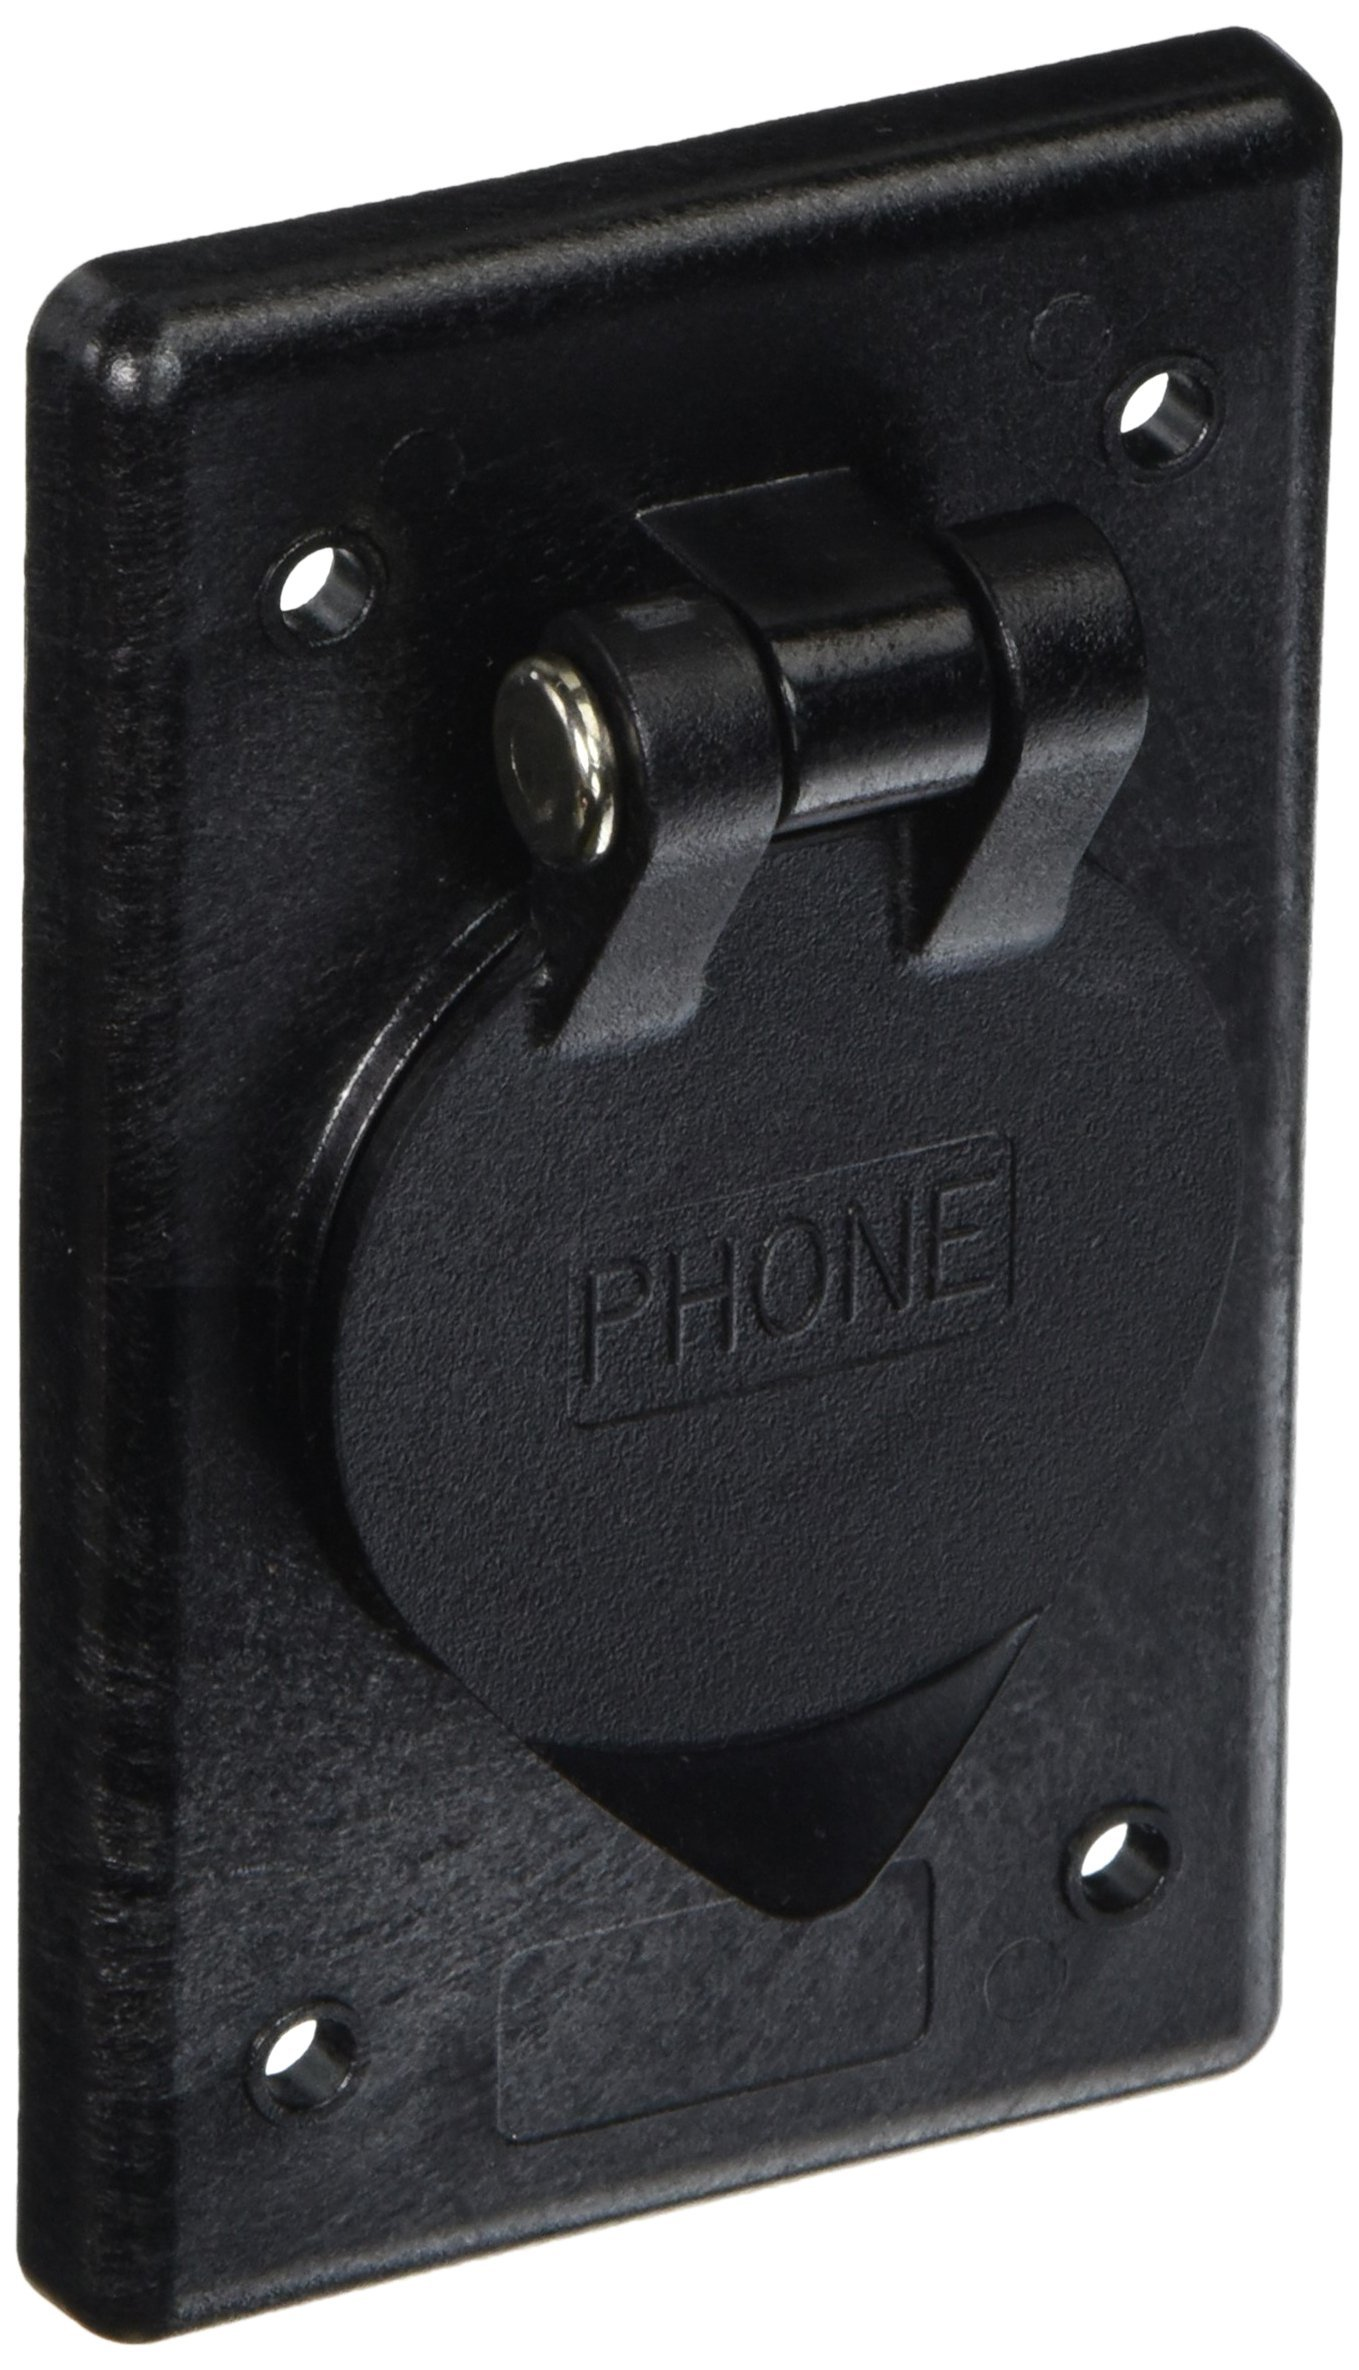 Cheap Phone Outlet Wiring Find Deals On Line At Black White Get Quotations Hubbell Systems Ph6597 Polycarbonate Rectangular With Gasketed And Spring Loaded Lift Cover